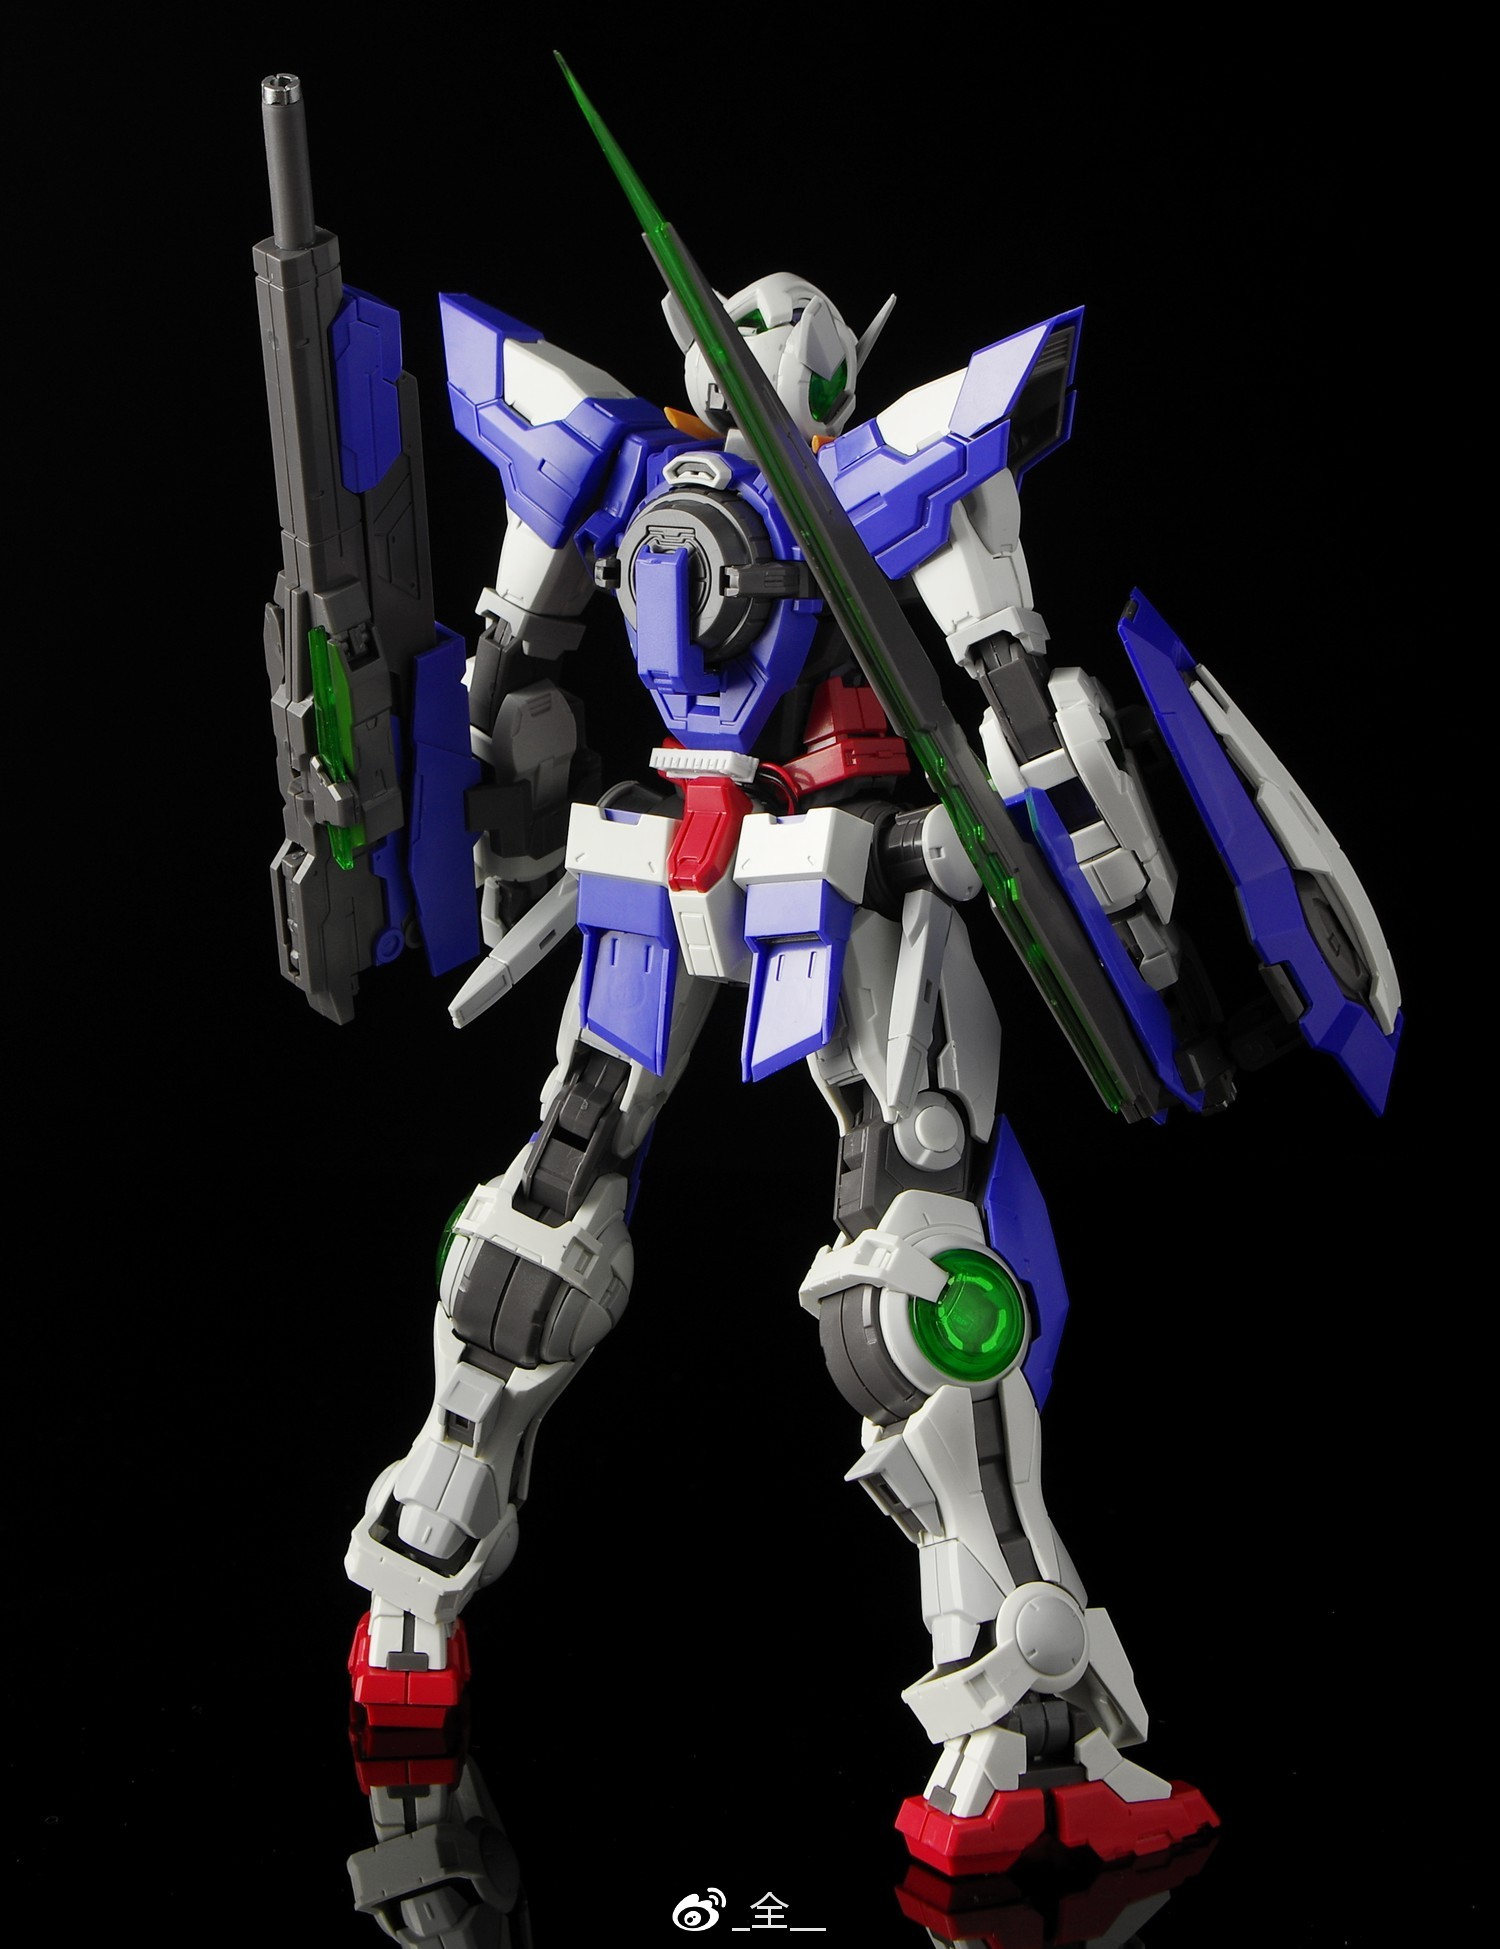 S269_mg_exia_led_hobby_star_inask_095.jpg